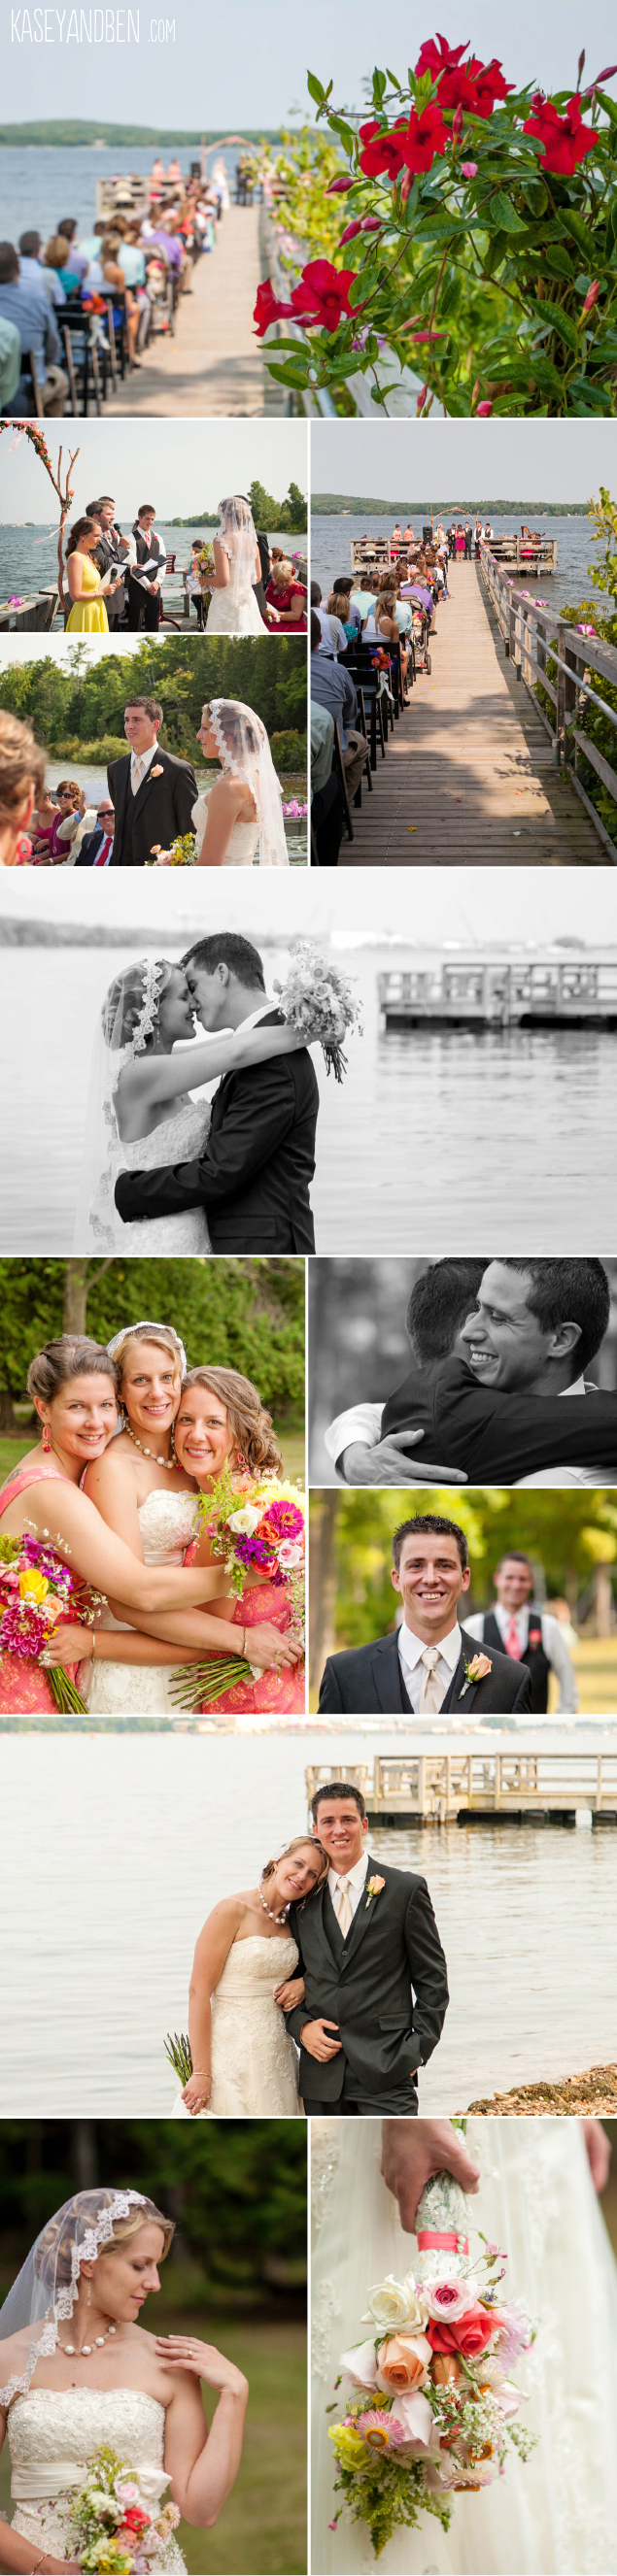 Potowatomi_State_Park_Door_County_Outdoor_Wedding2